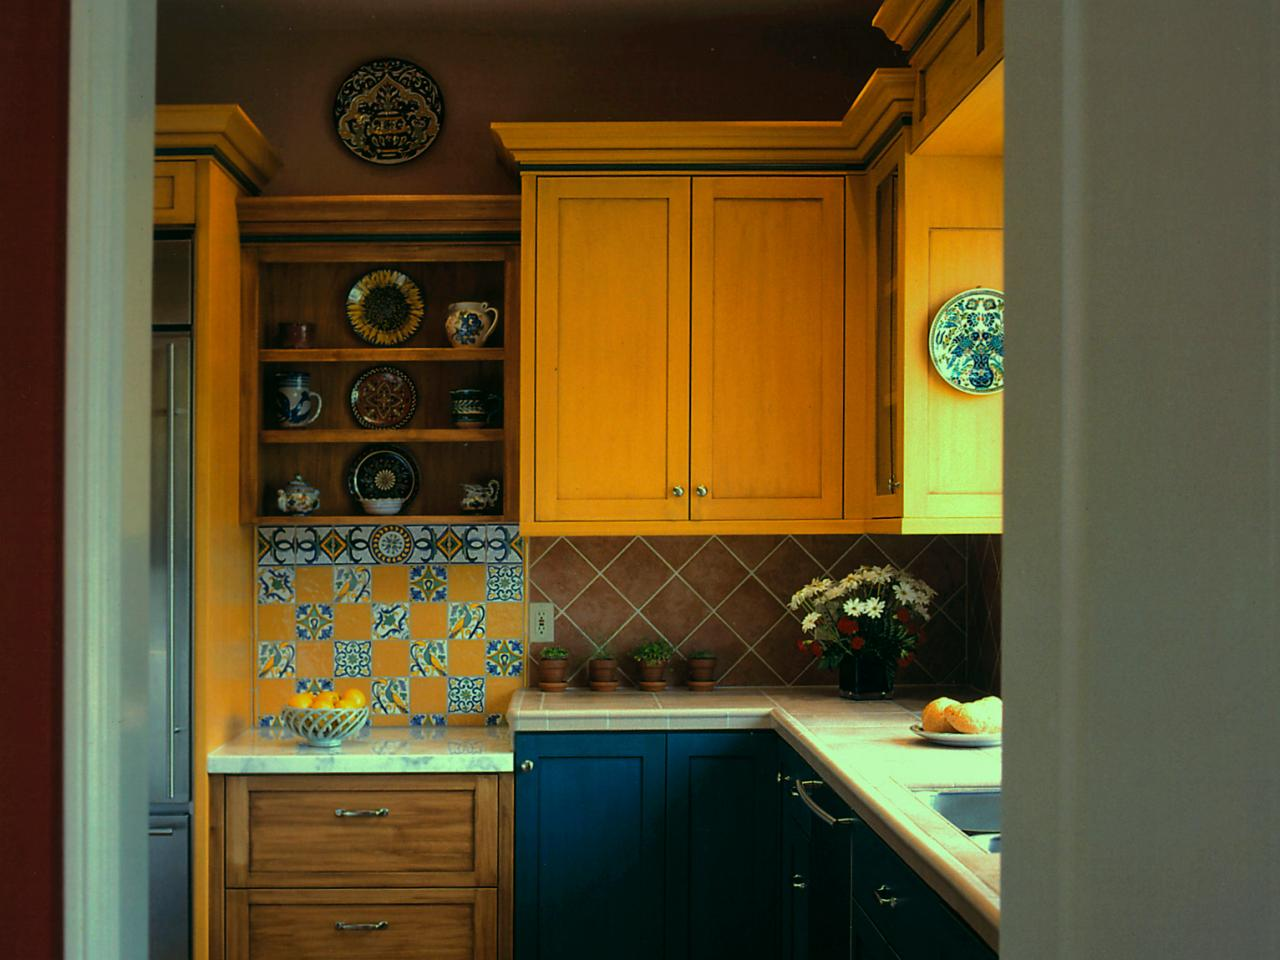 painted kitchen cabinet ideas pictures options tips advice hgtv painted kitchen cabinet ideas